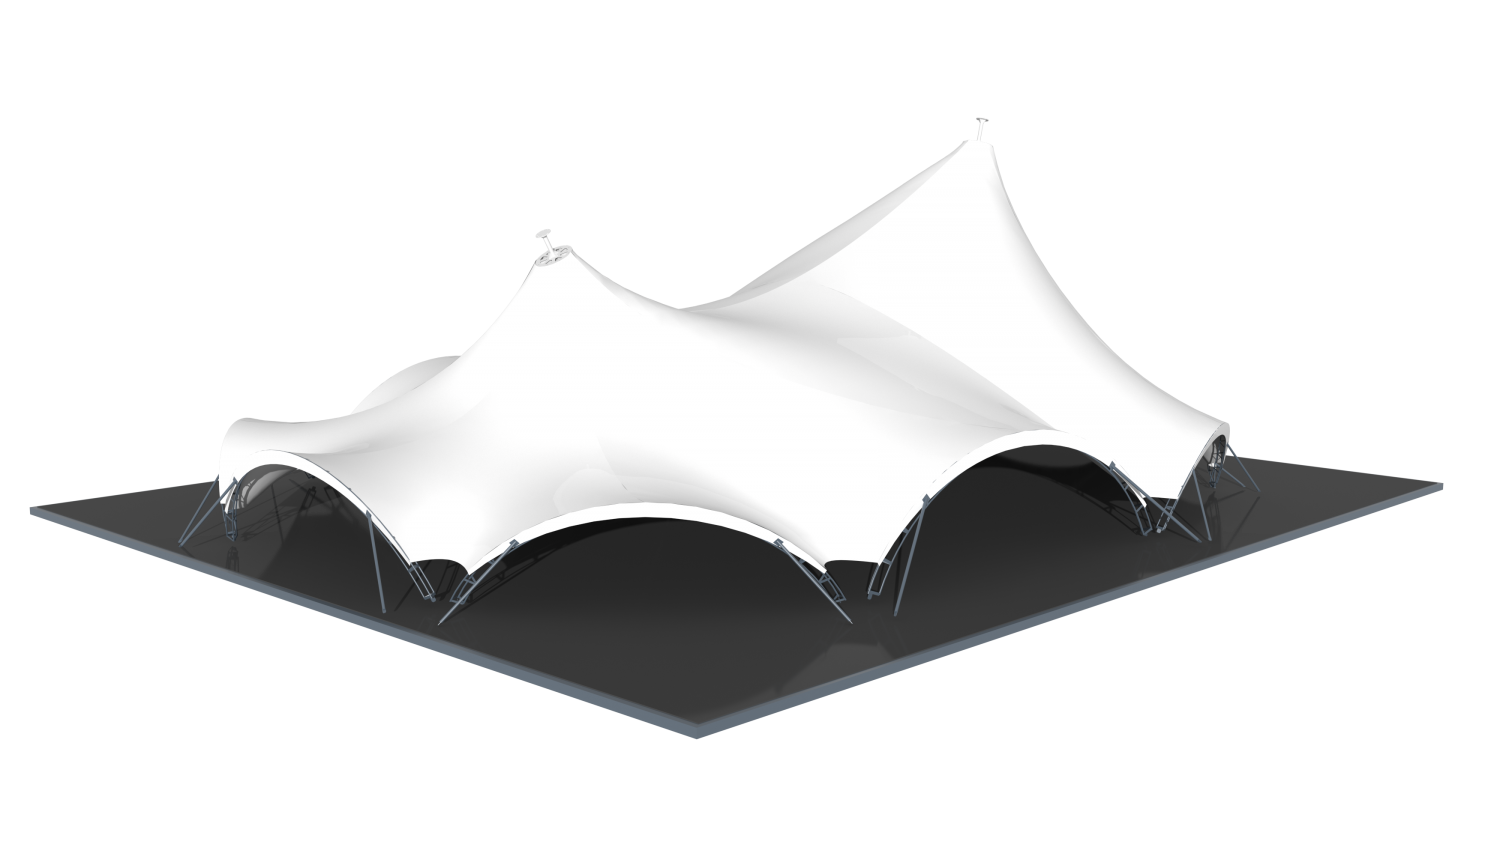 Exclusive Membrane tent-ALPES